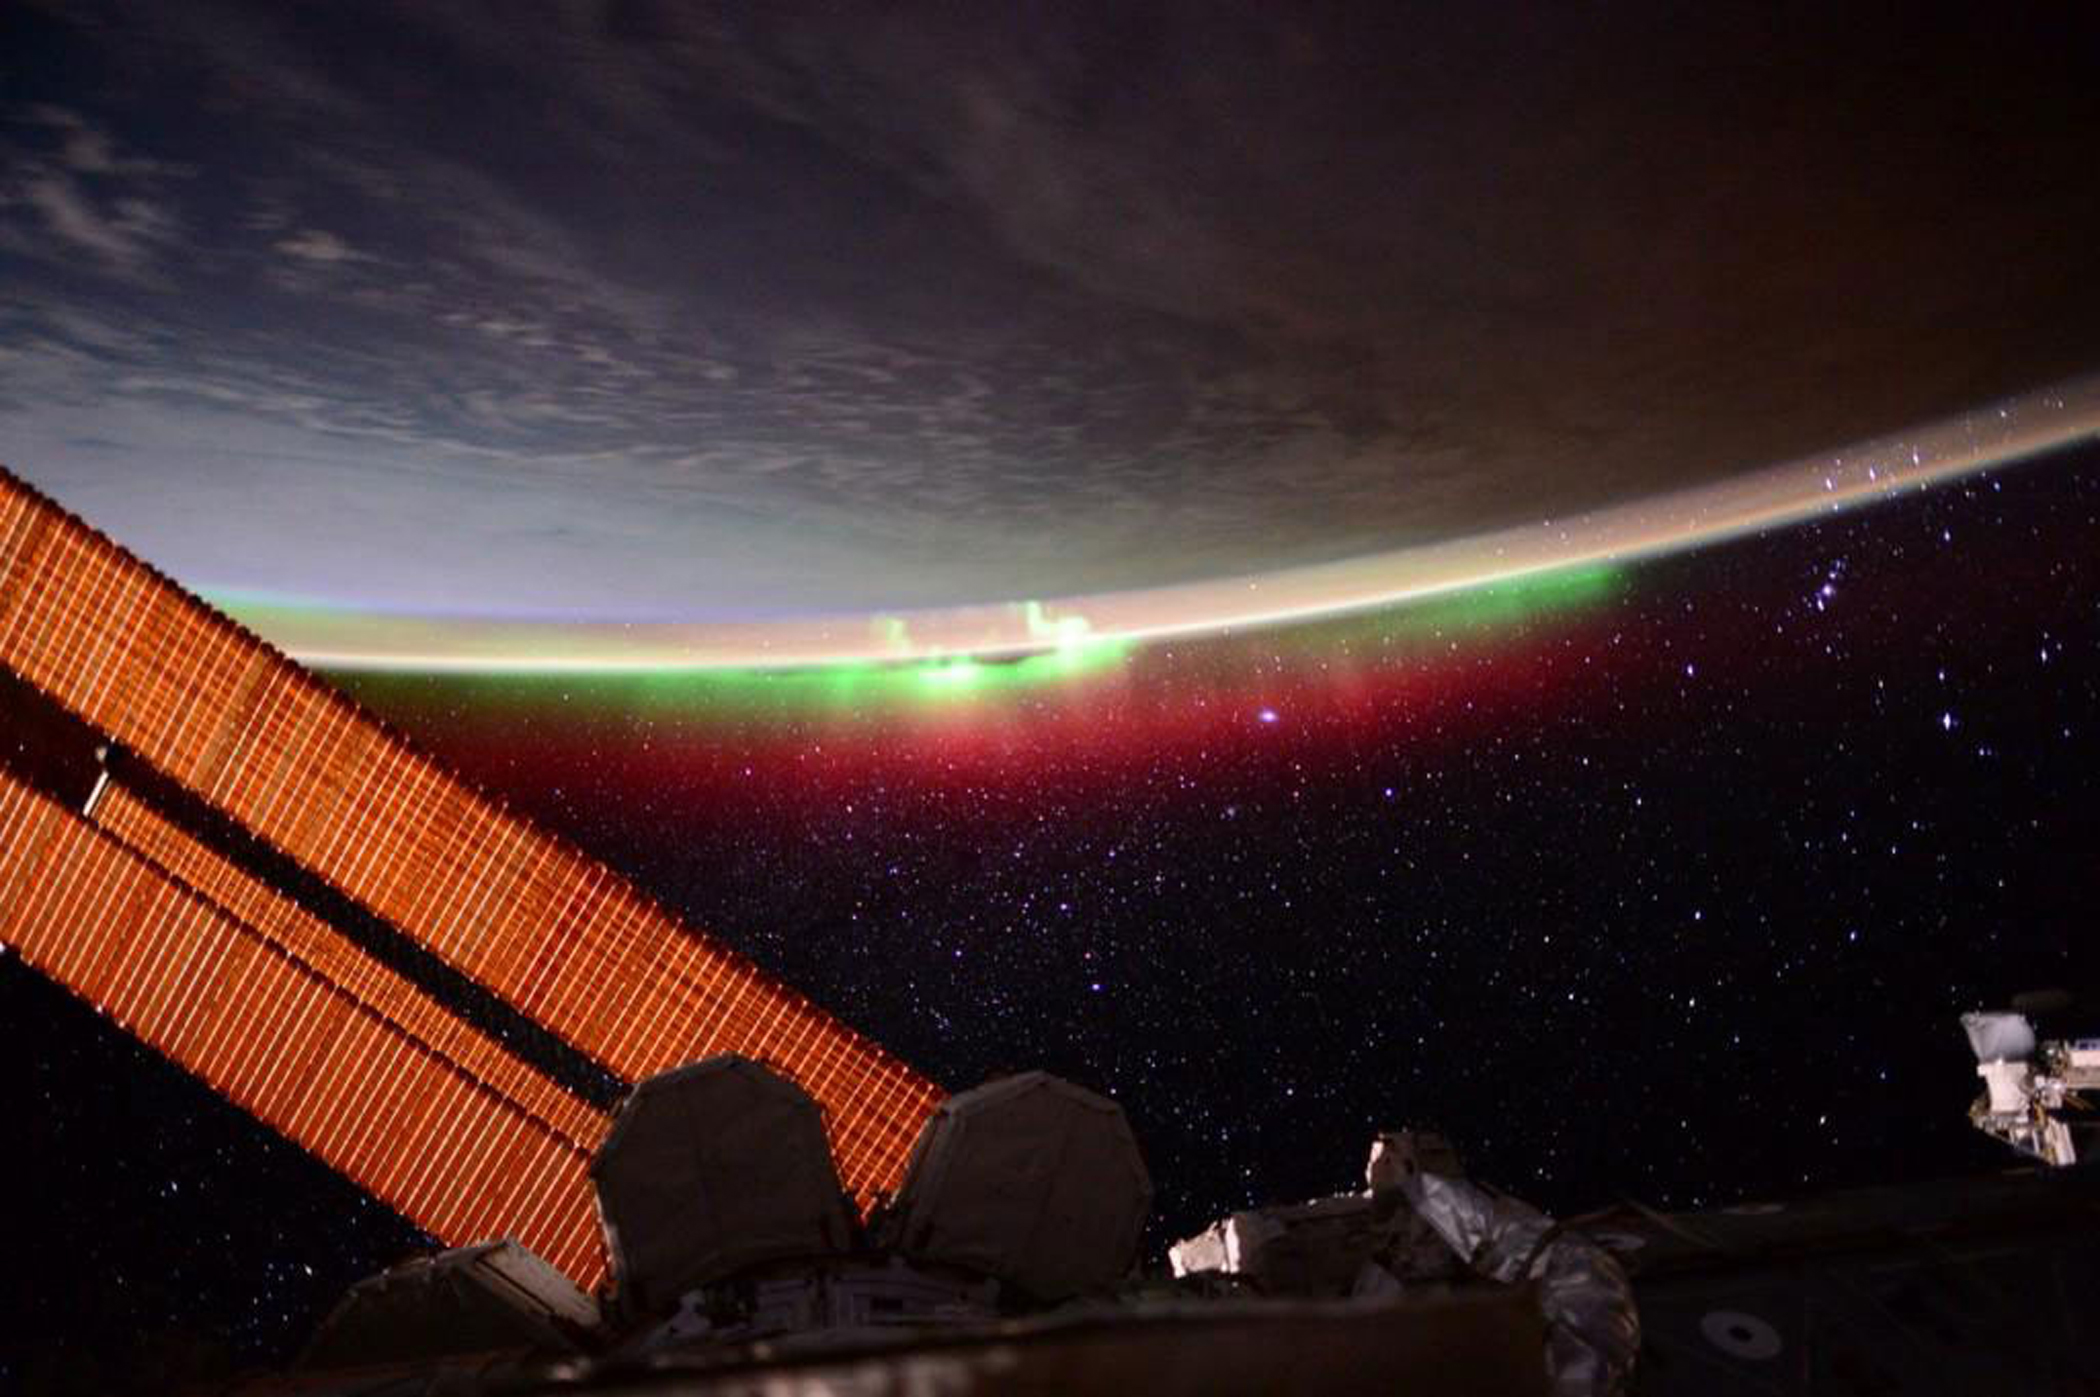 A brilliant aurora as seen from the International Space Station on June 27, 2015.